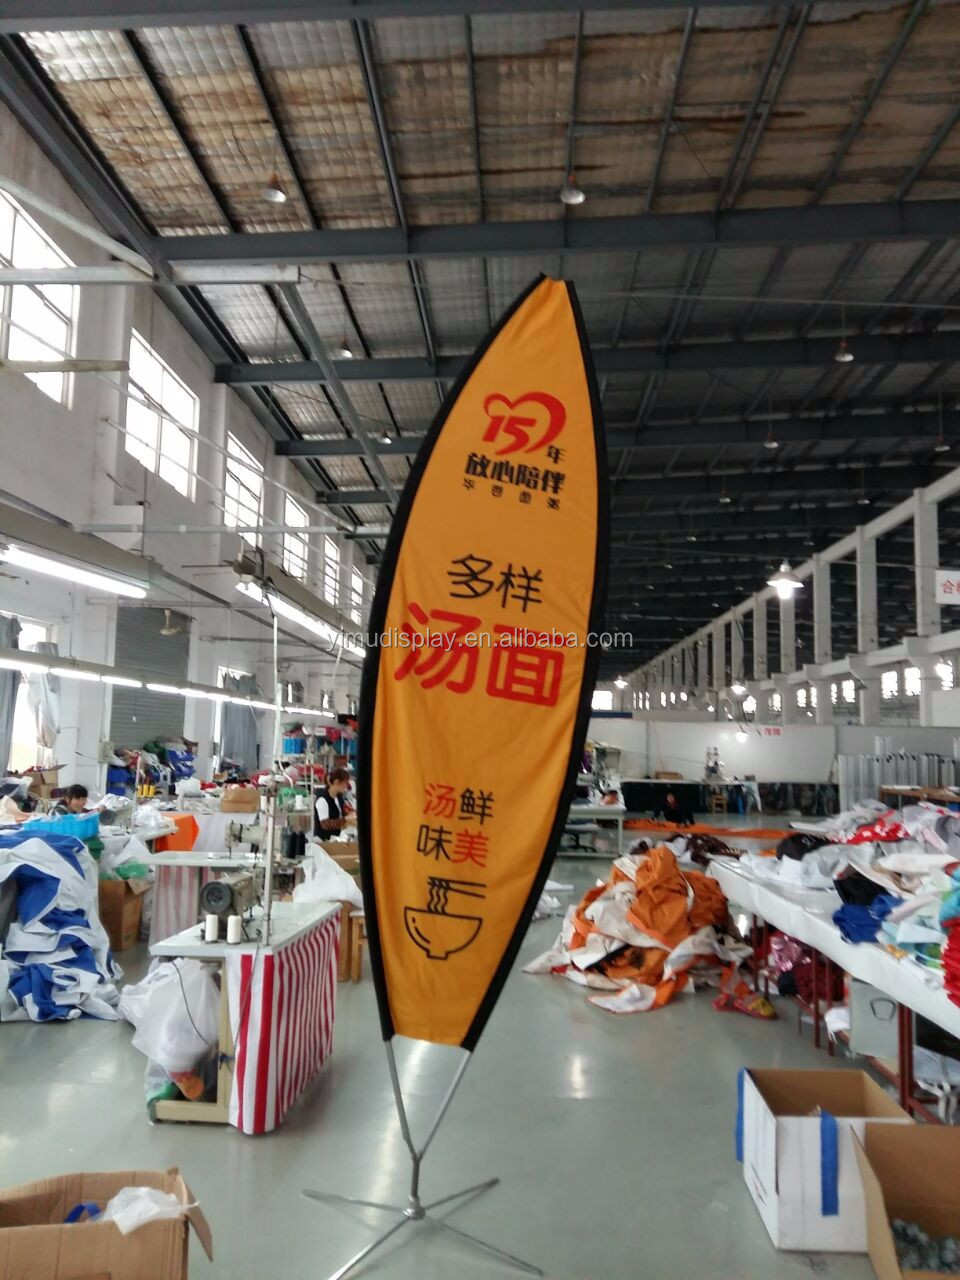 trade show commercial red safety flags